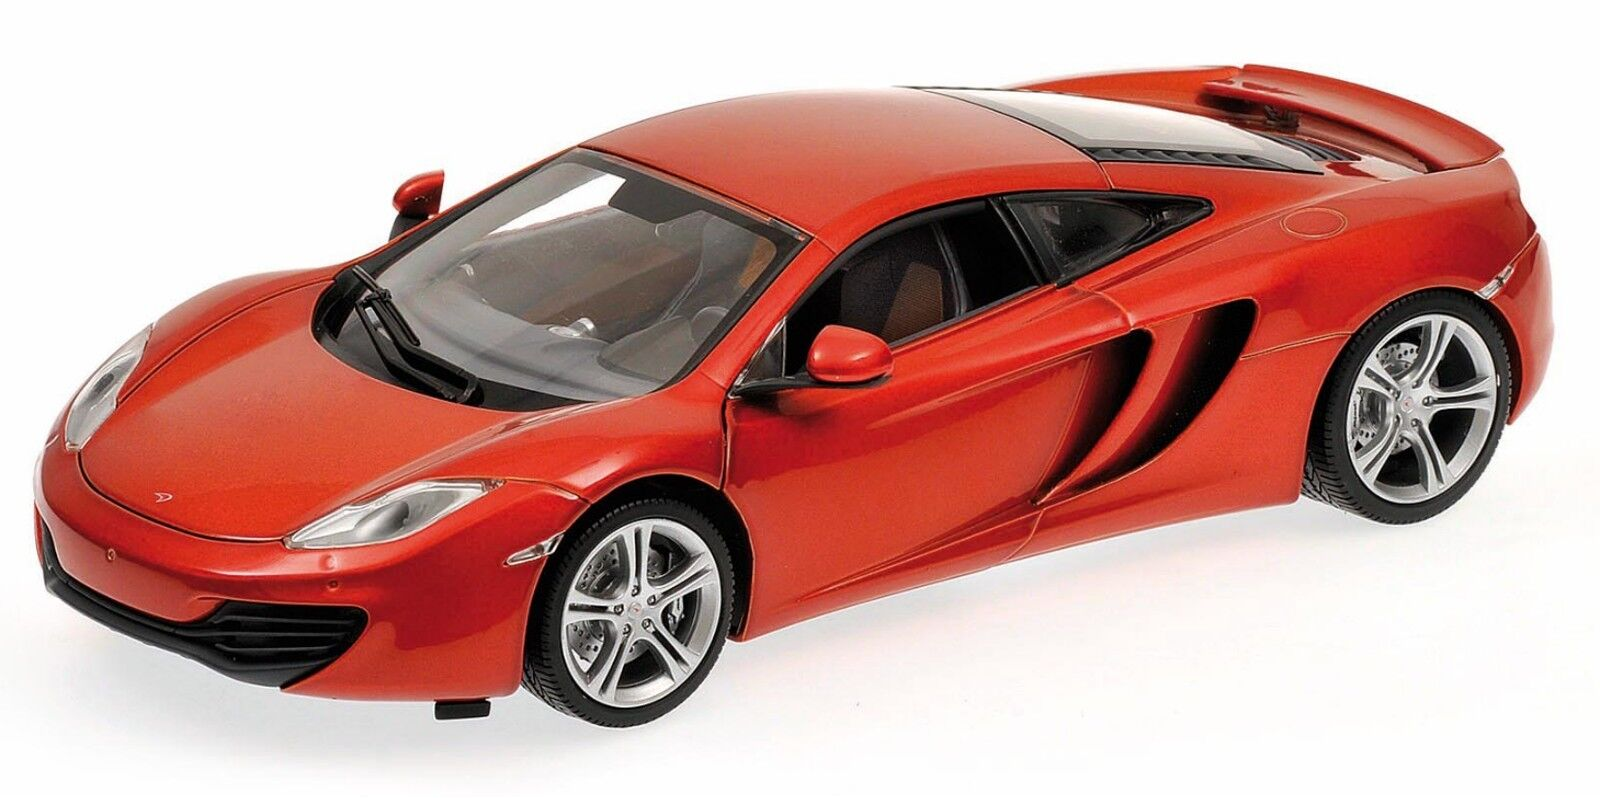 Minichamps Minichamps Minichamps 1 18  110133020 Mclaren Mp4-12c (2011), orange Metallic a389fa